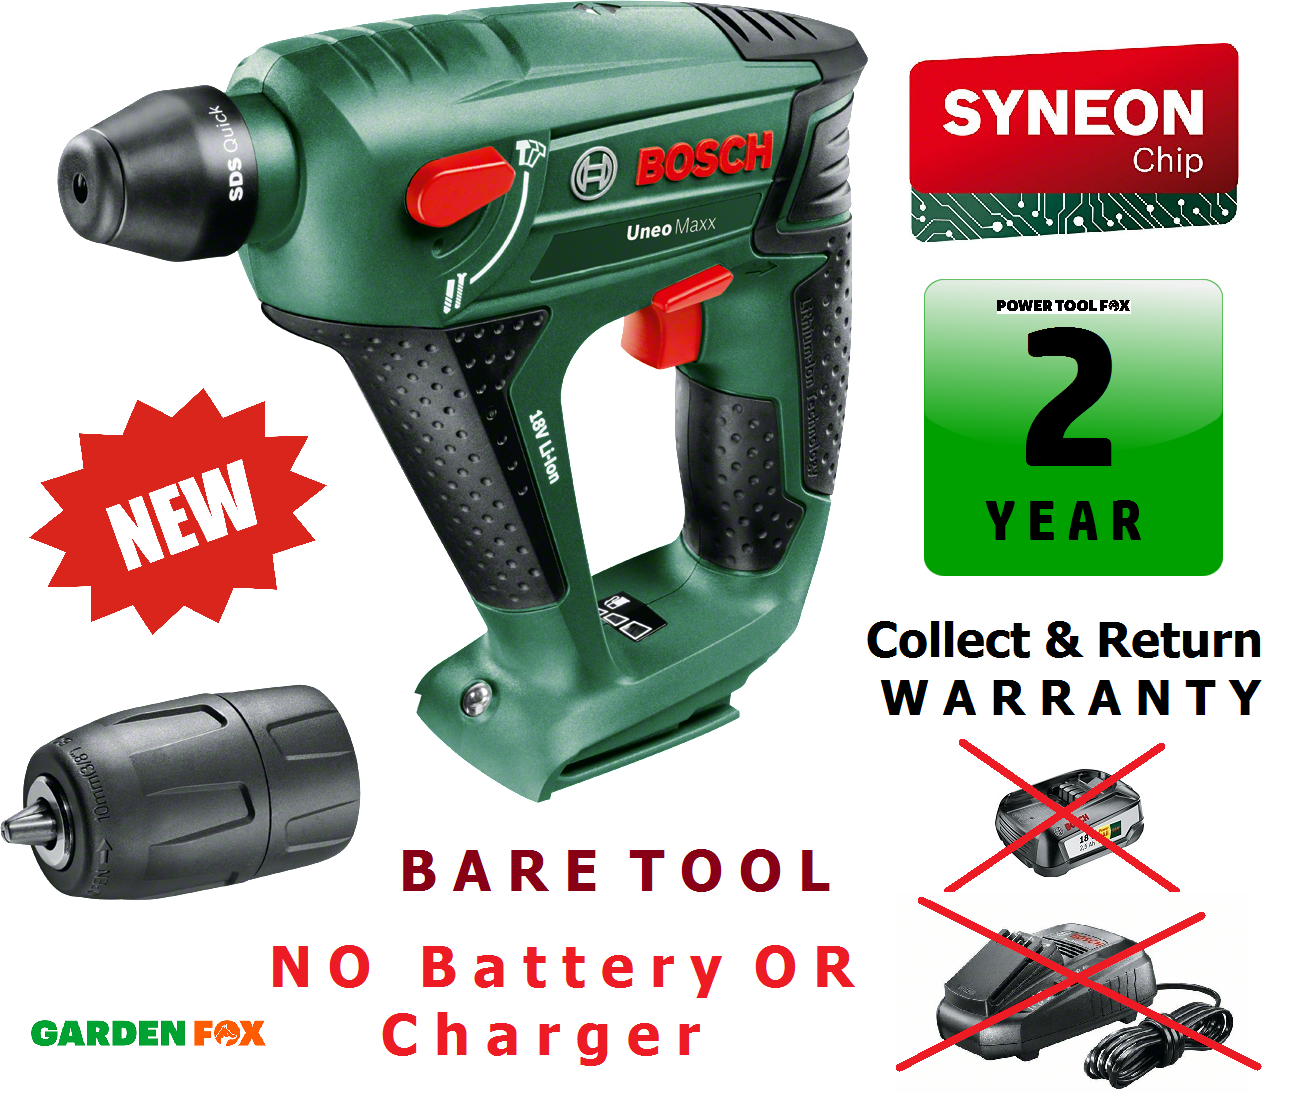 bosch uneo maxx 18 cordless hammer drill without battery and charger